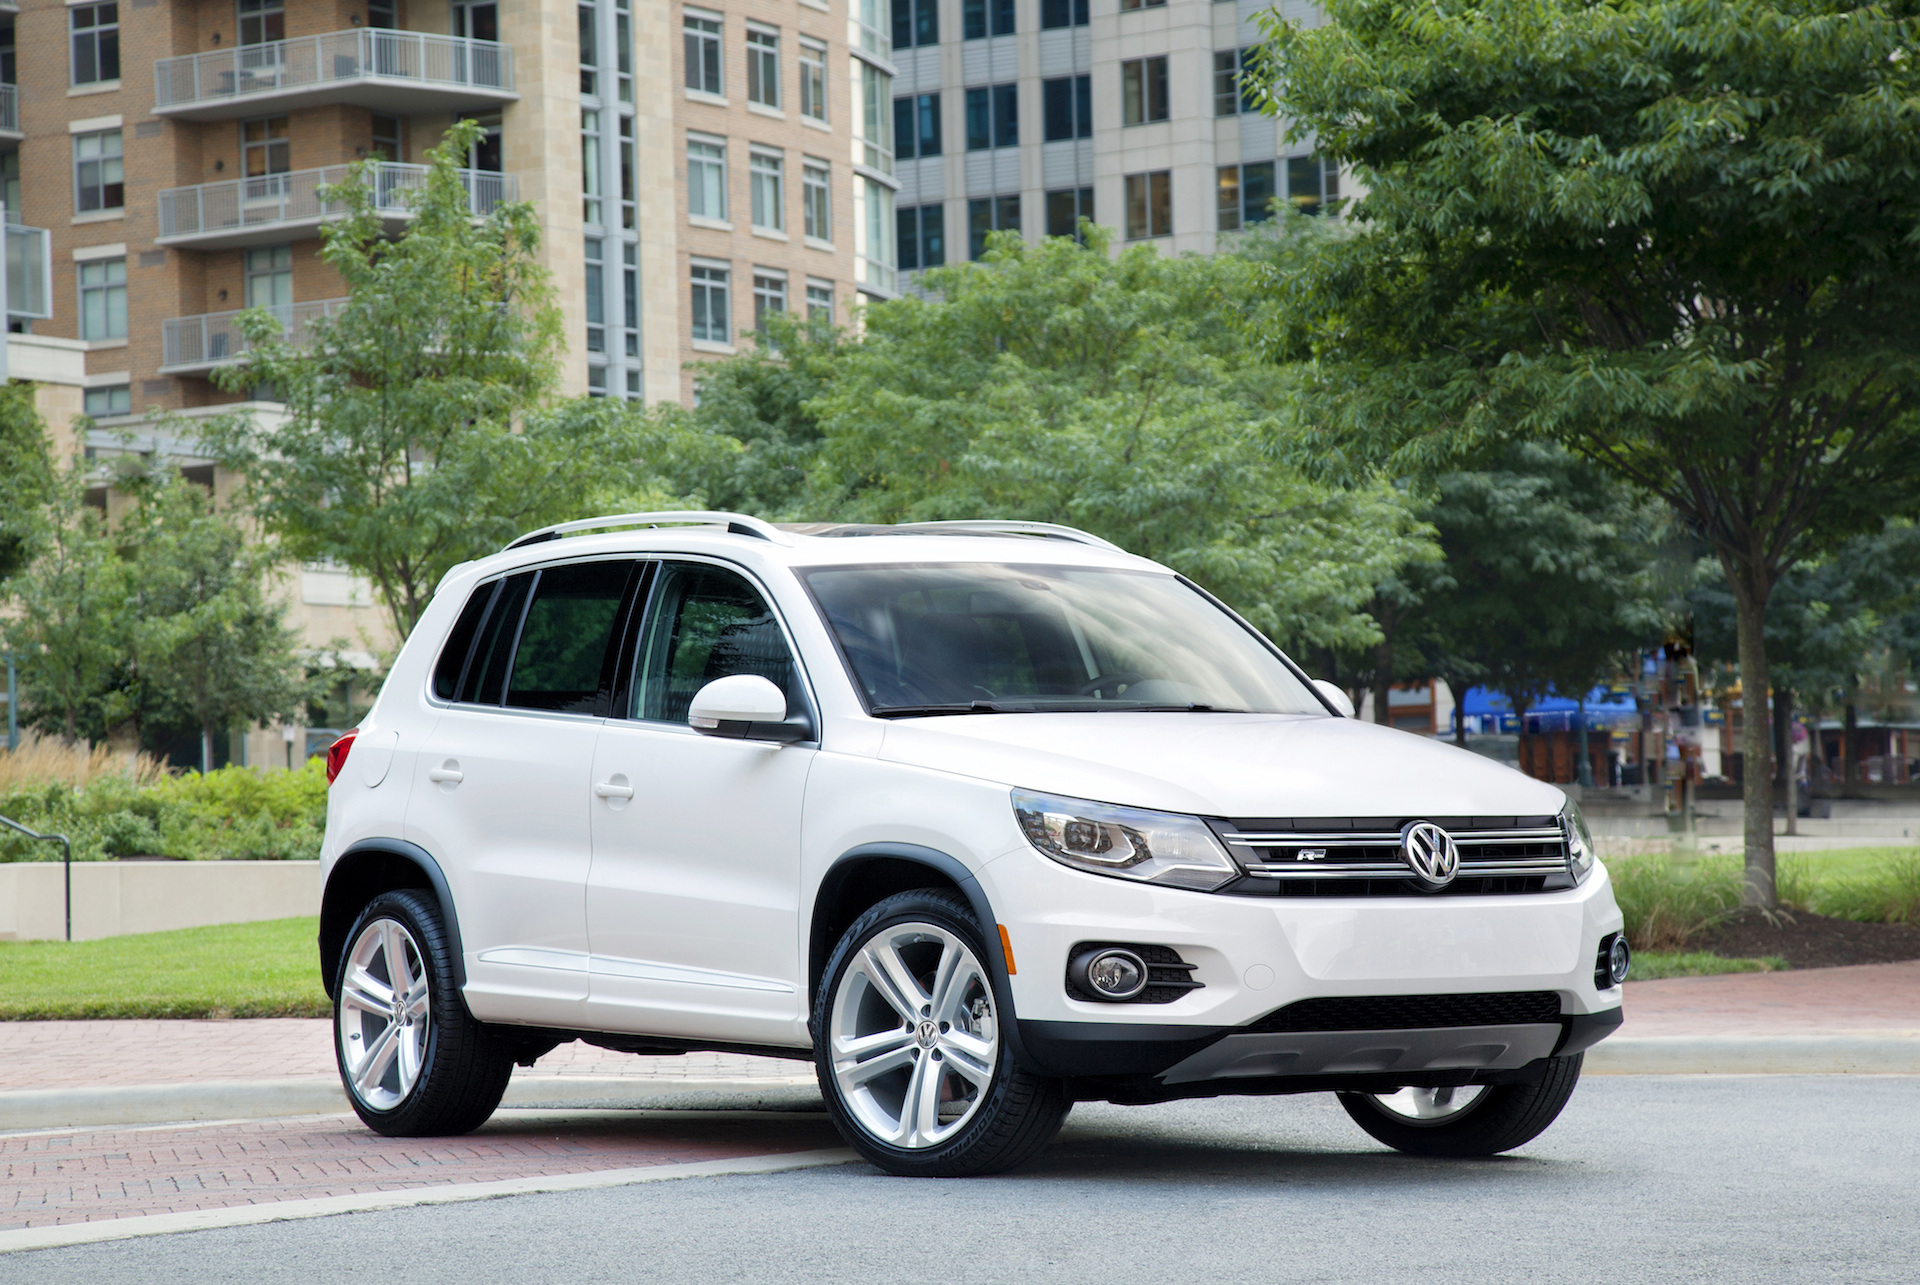 Land Rover Dallas >> 2015 Volkswagen Tiguan (VW) Review, Ratings, Specs, Prices, and Photos - The Car Connection